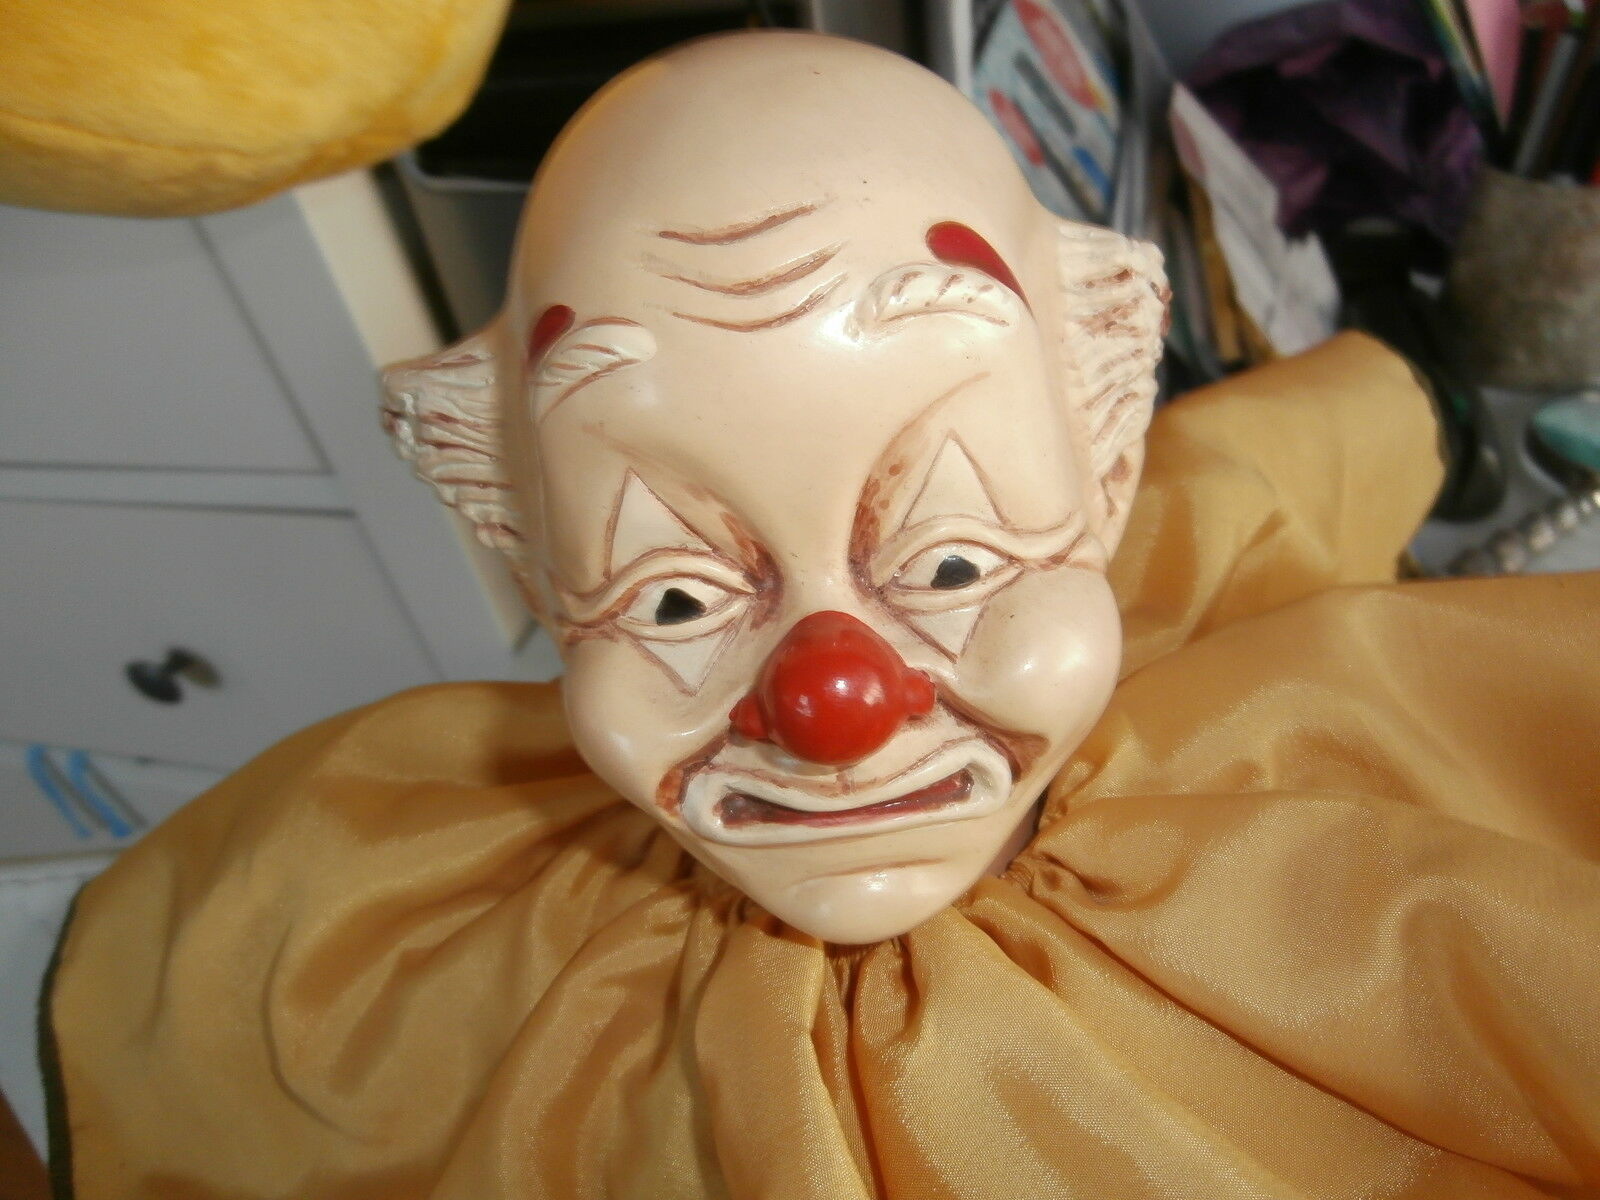 BRINN'S COLLECTIBLE LIMITED EDITION 341 5000 HAND MADE MUSICAL CLOWN DOLL